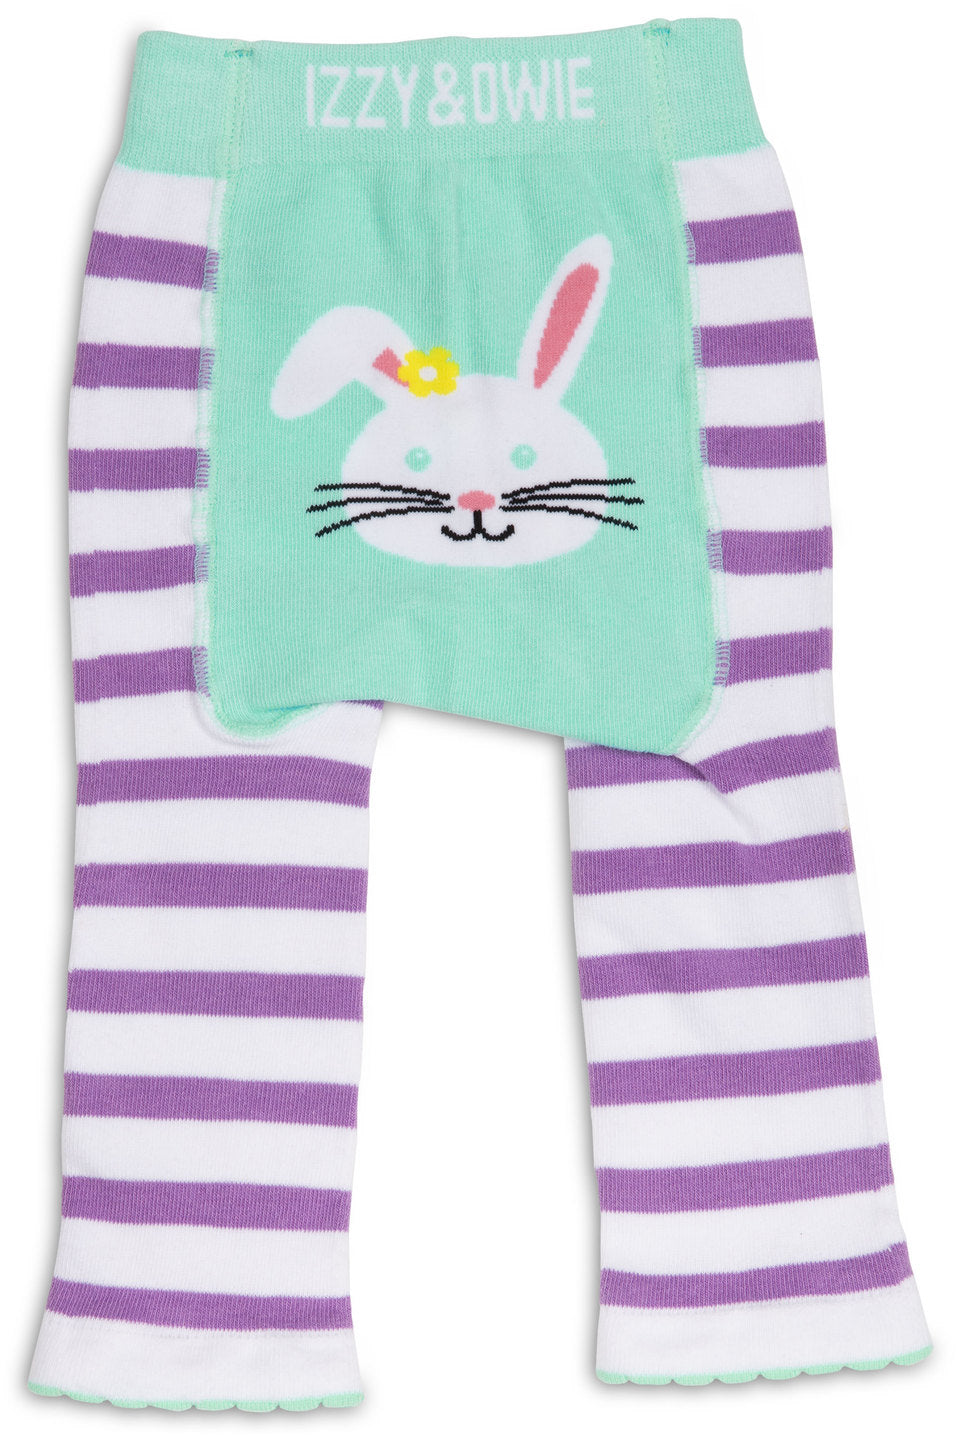 Blue and Lavender Bunny Leggings 6-12 M Baby Leggings Izzy & Owie - GigglesGear.com